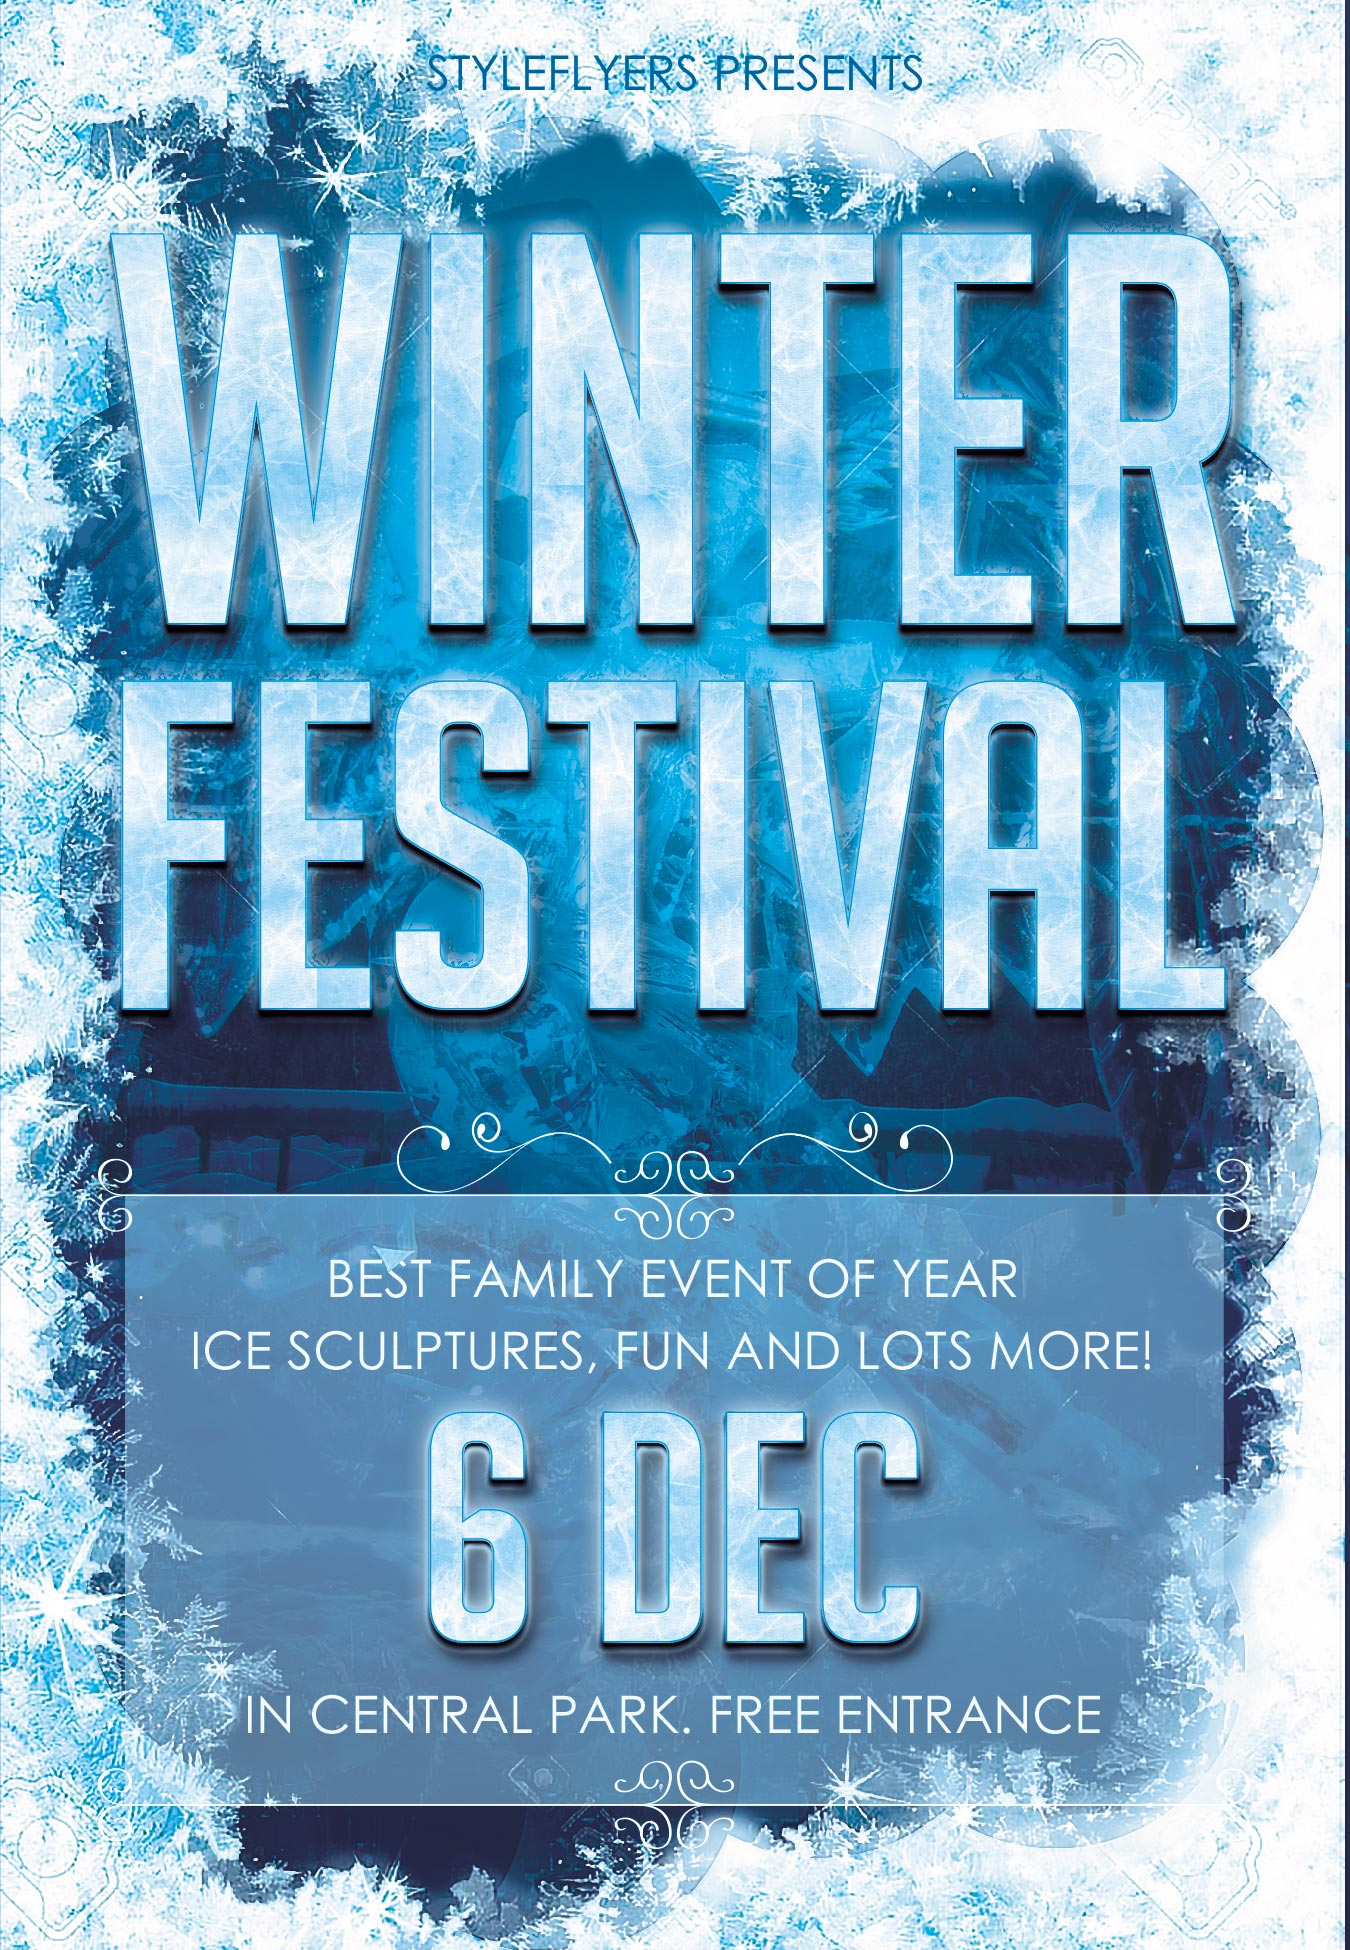 flyers as a promotion tool psd templates winter fest